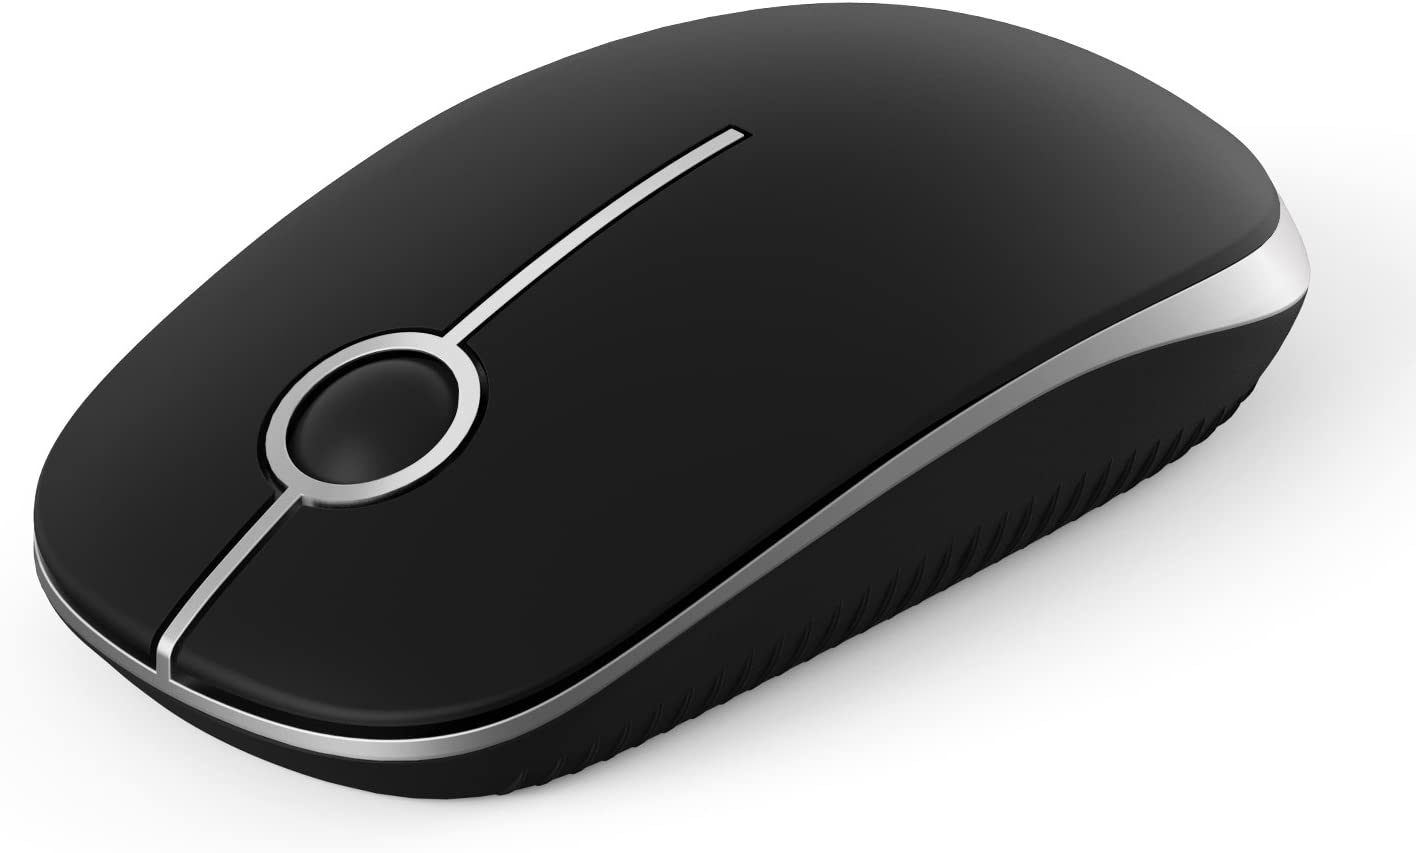 Jelly Comb 2.4G Slim Wireless Mouse with Nano Receiver, Less Noise, Portable Mobile Optical Mice for Notebook, PC, Laptop, Computer, MacBook MS001 (Black and Silver)